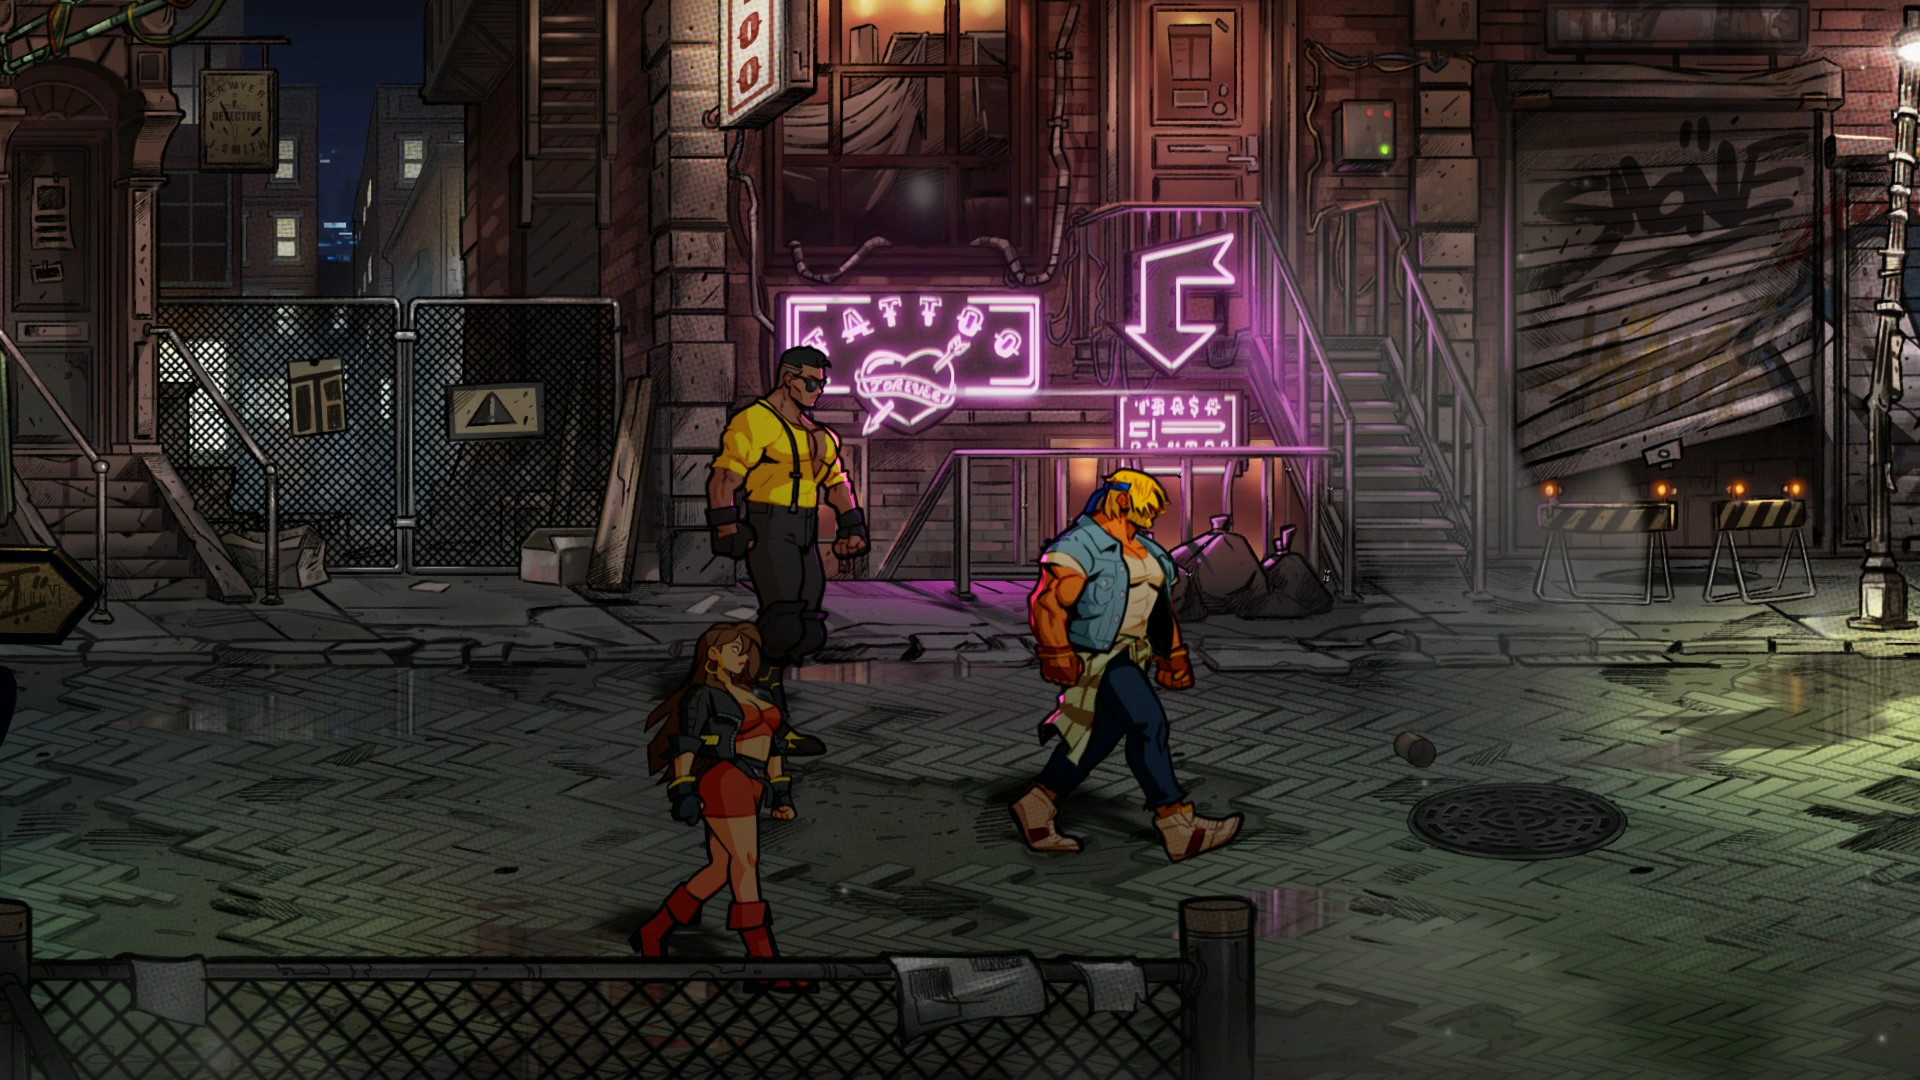 Save 40% on Streets of Rage 4 on Steam